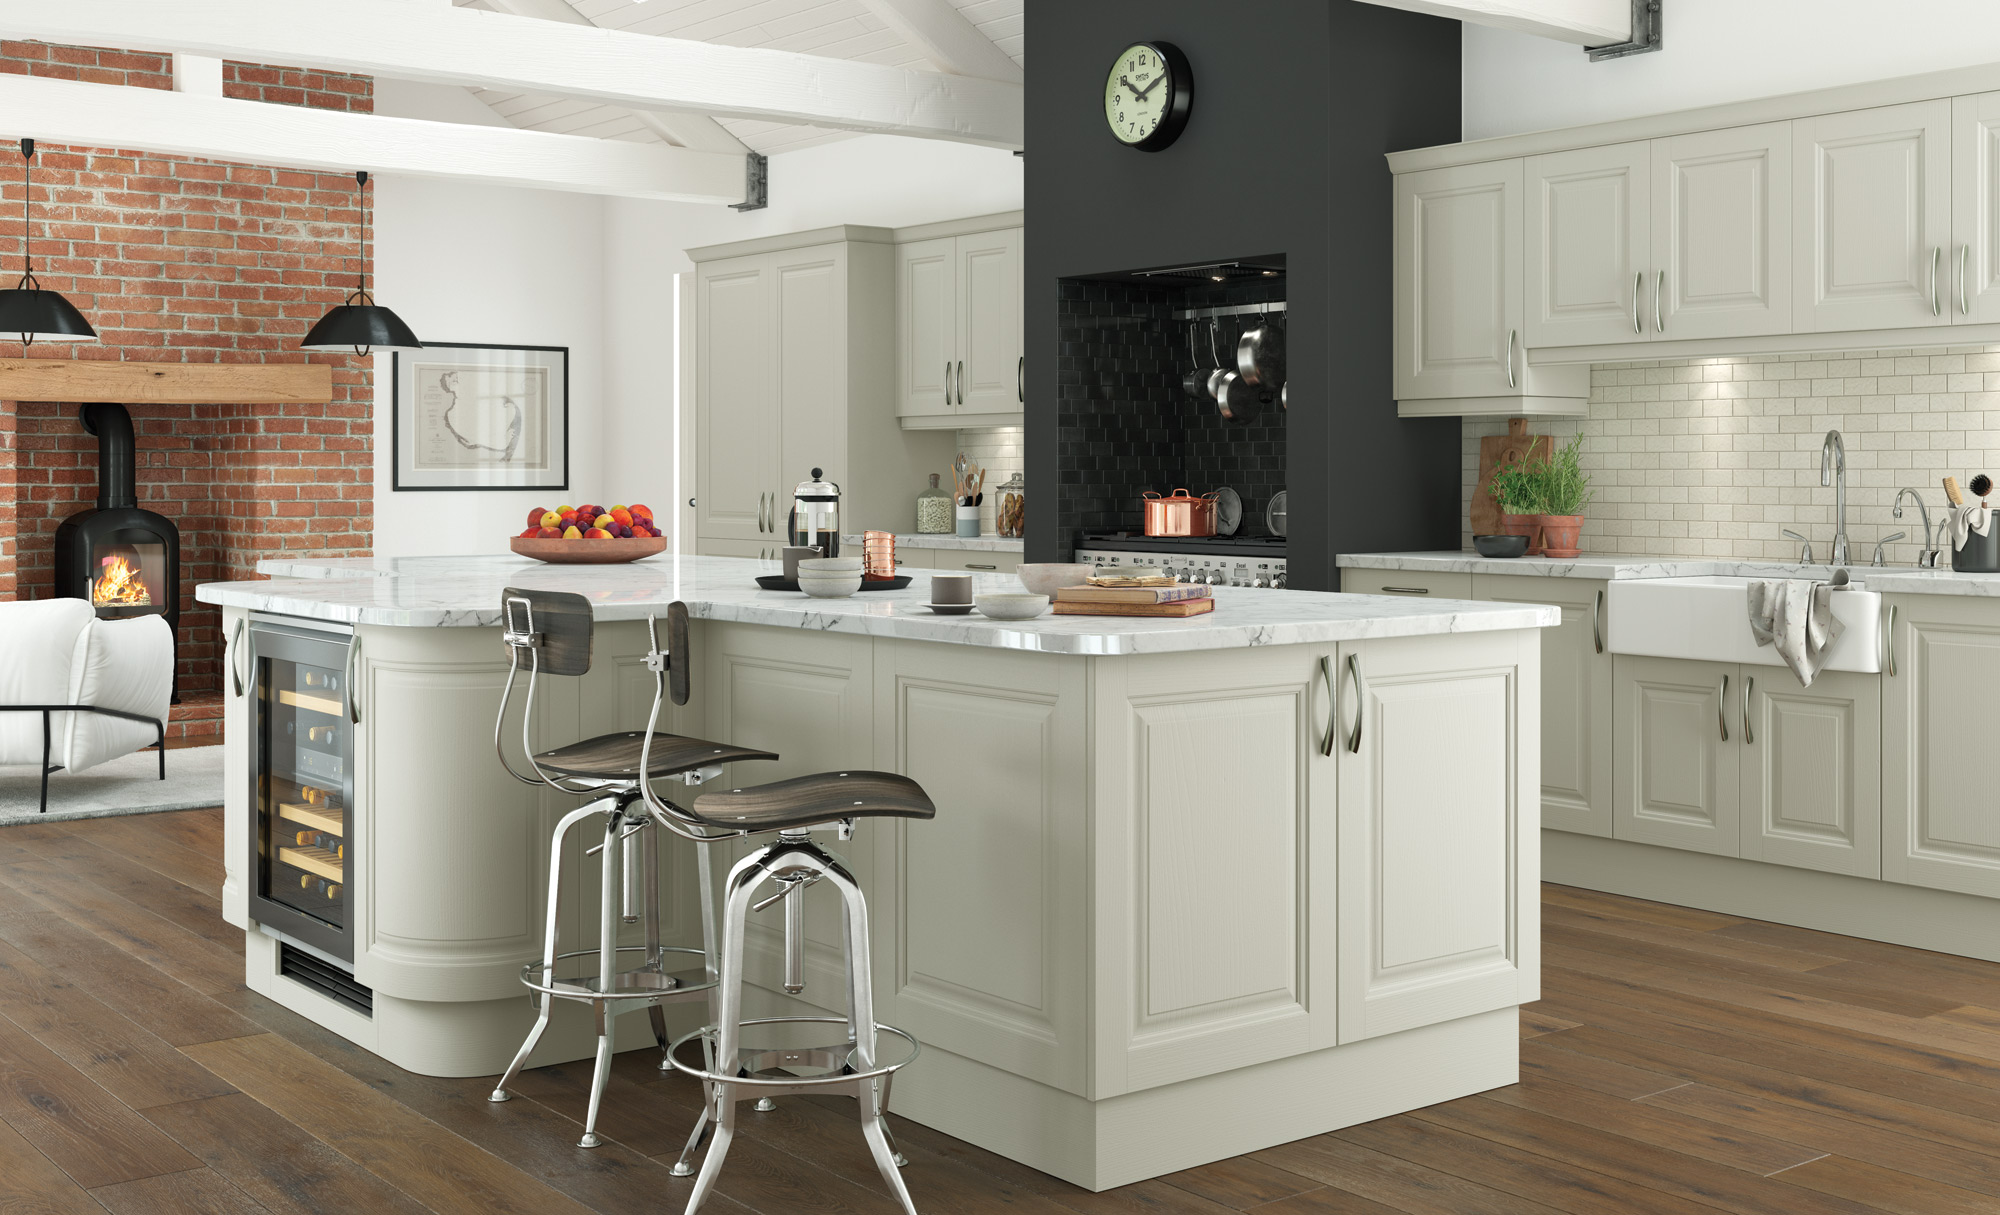 Perfect Design A Classic Kitchen